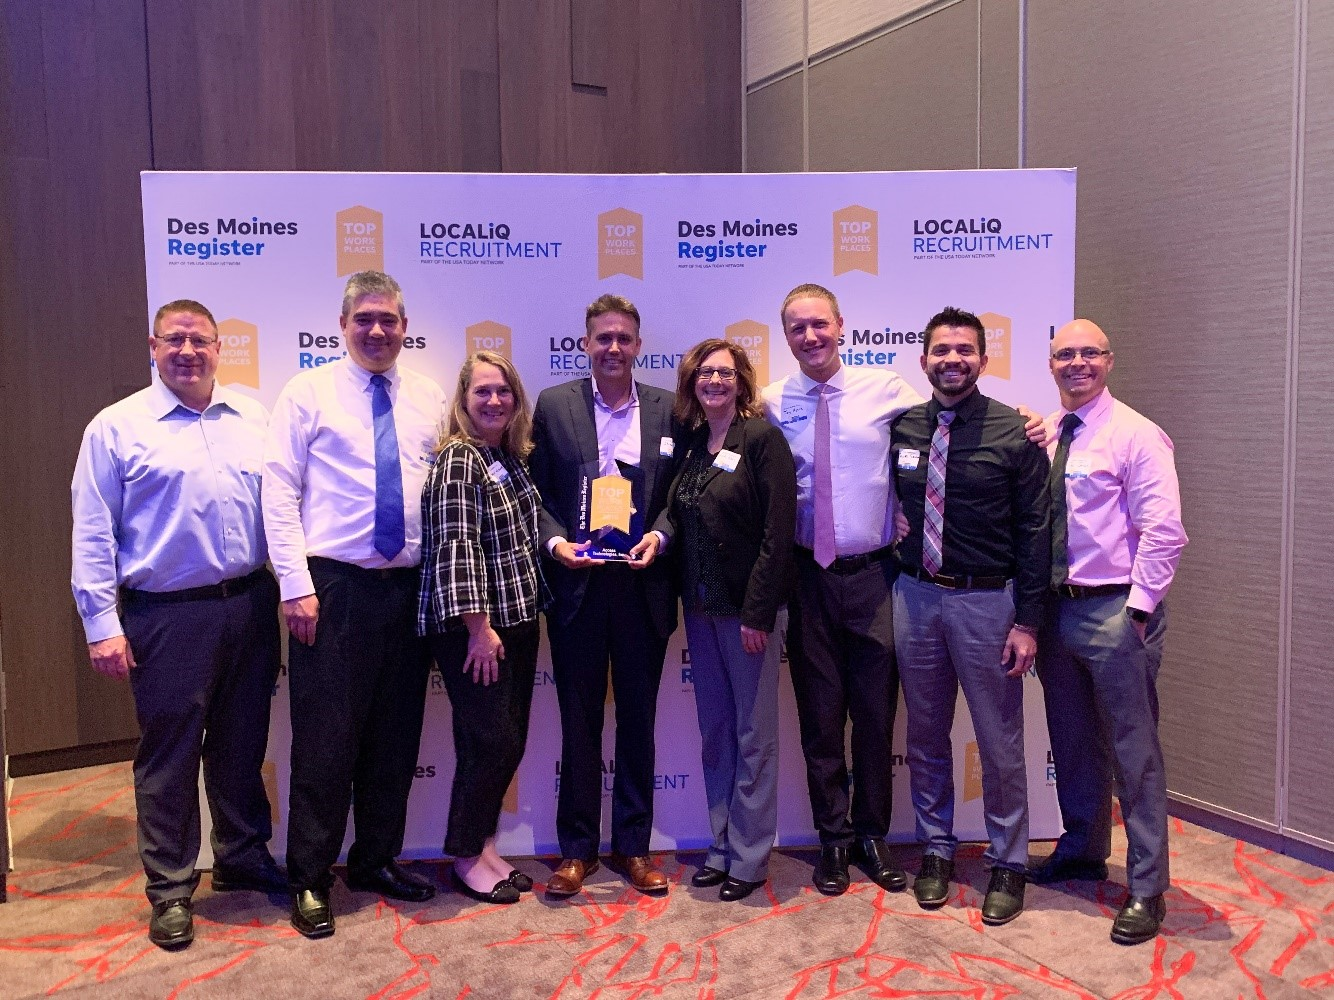 Access Systems Named #1 Top Workplace in Iowa